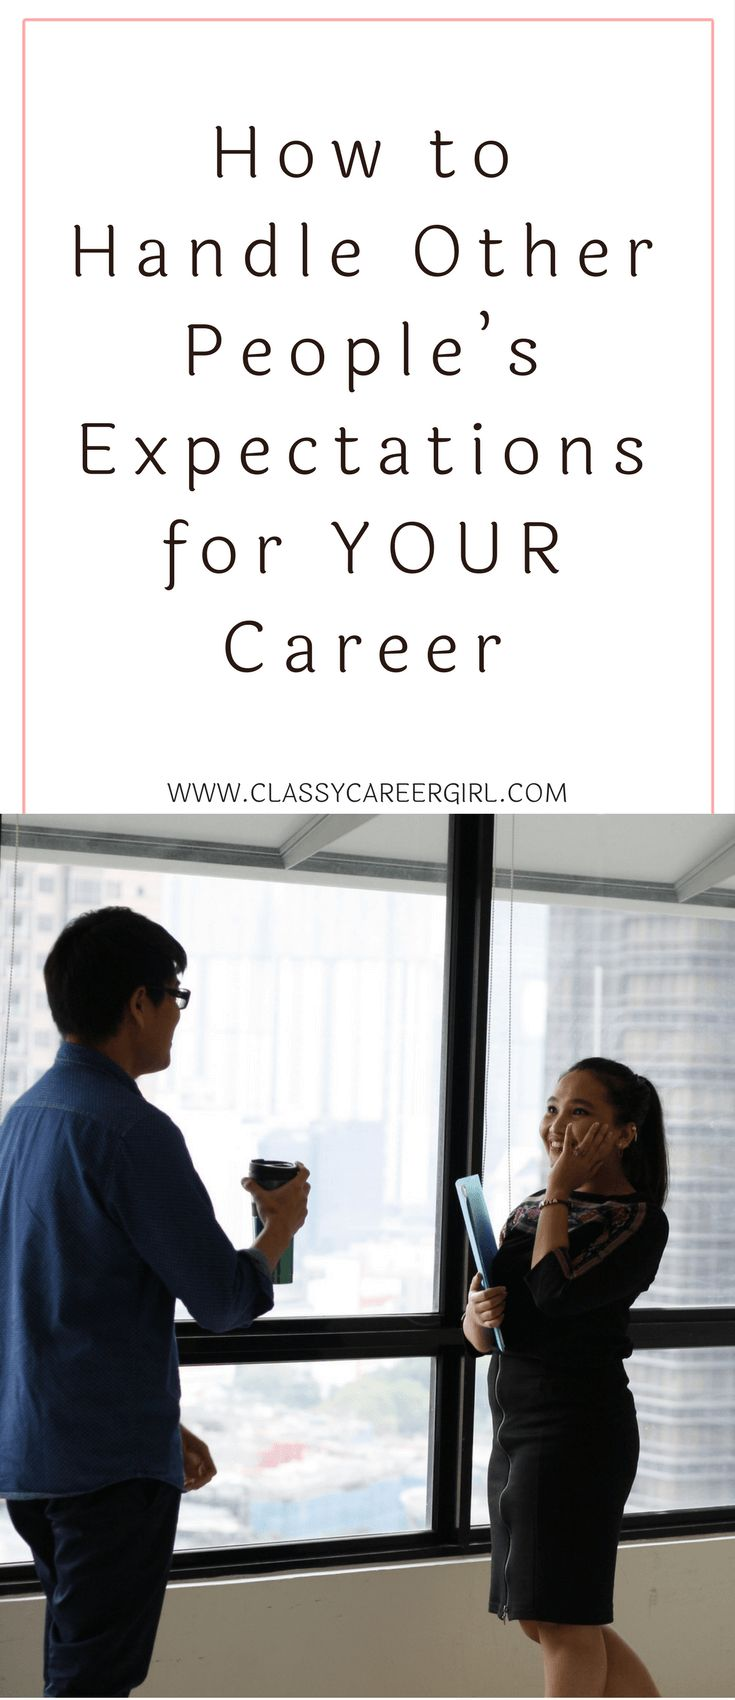 best images about job searching tips how to handle other people s expectations for your career